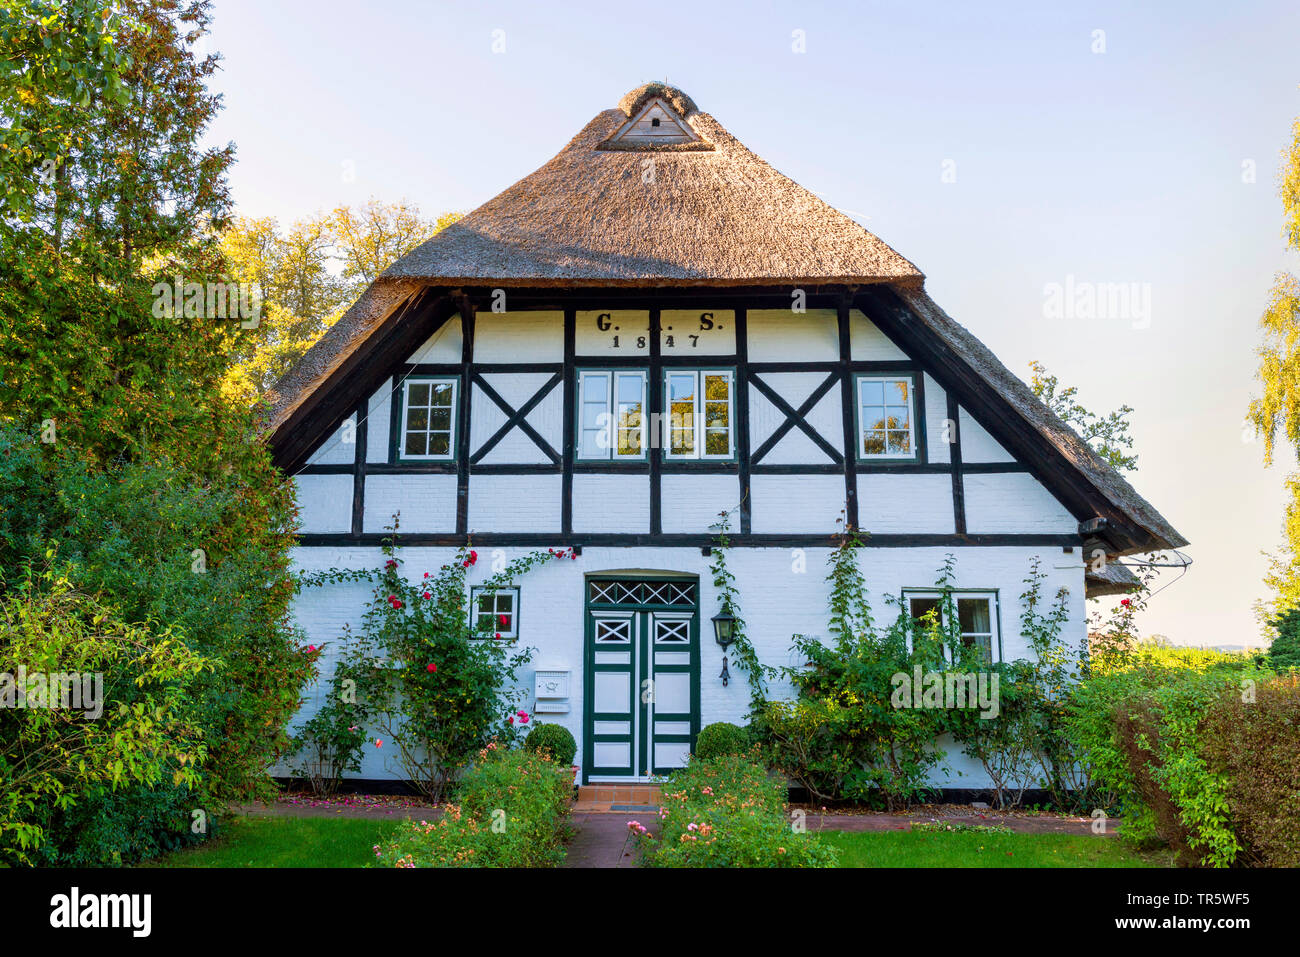 thatched-roof timber-framed house  Sieseby at Schlei, Germany, Schleswig-Holstein Stock Photo